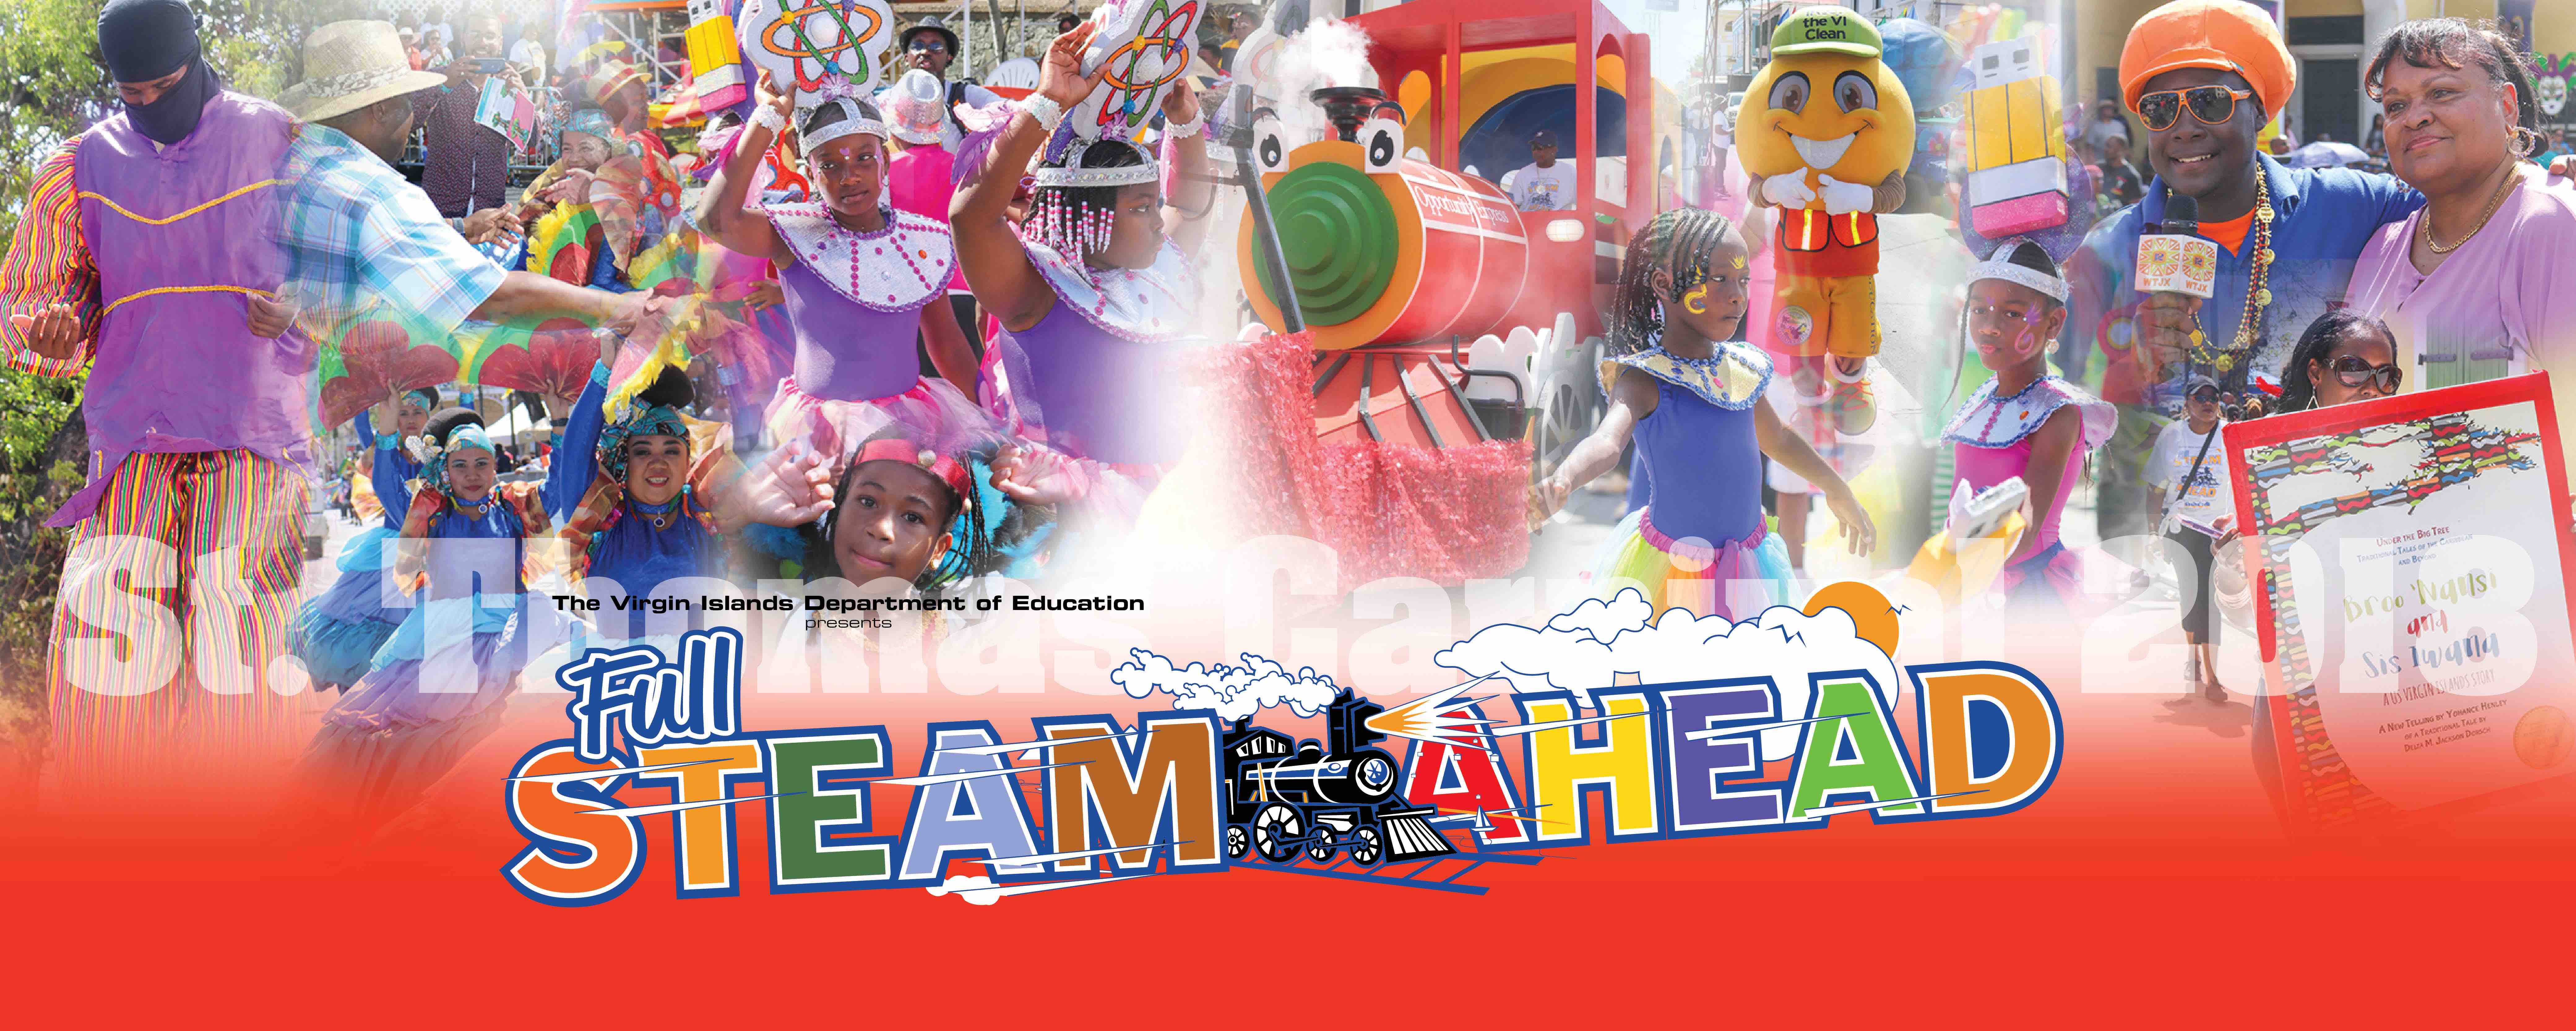 Full STEAM Ahead and into St. Thomas Carnival's History Books